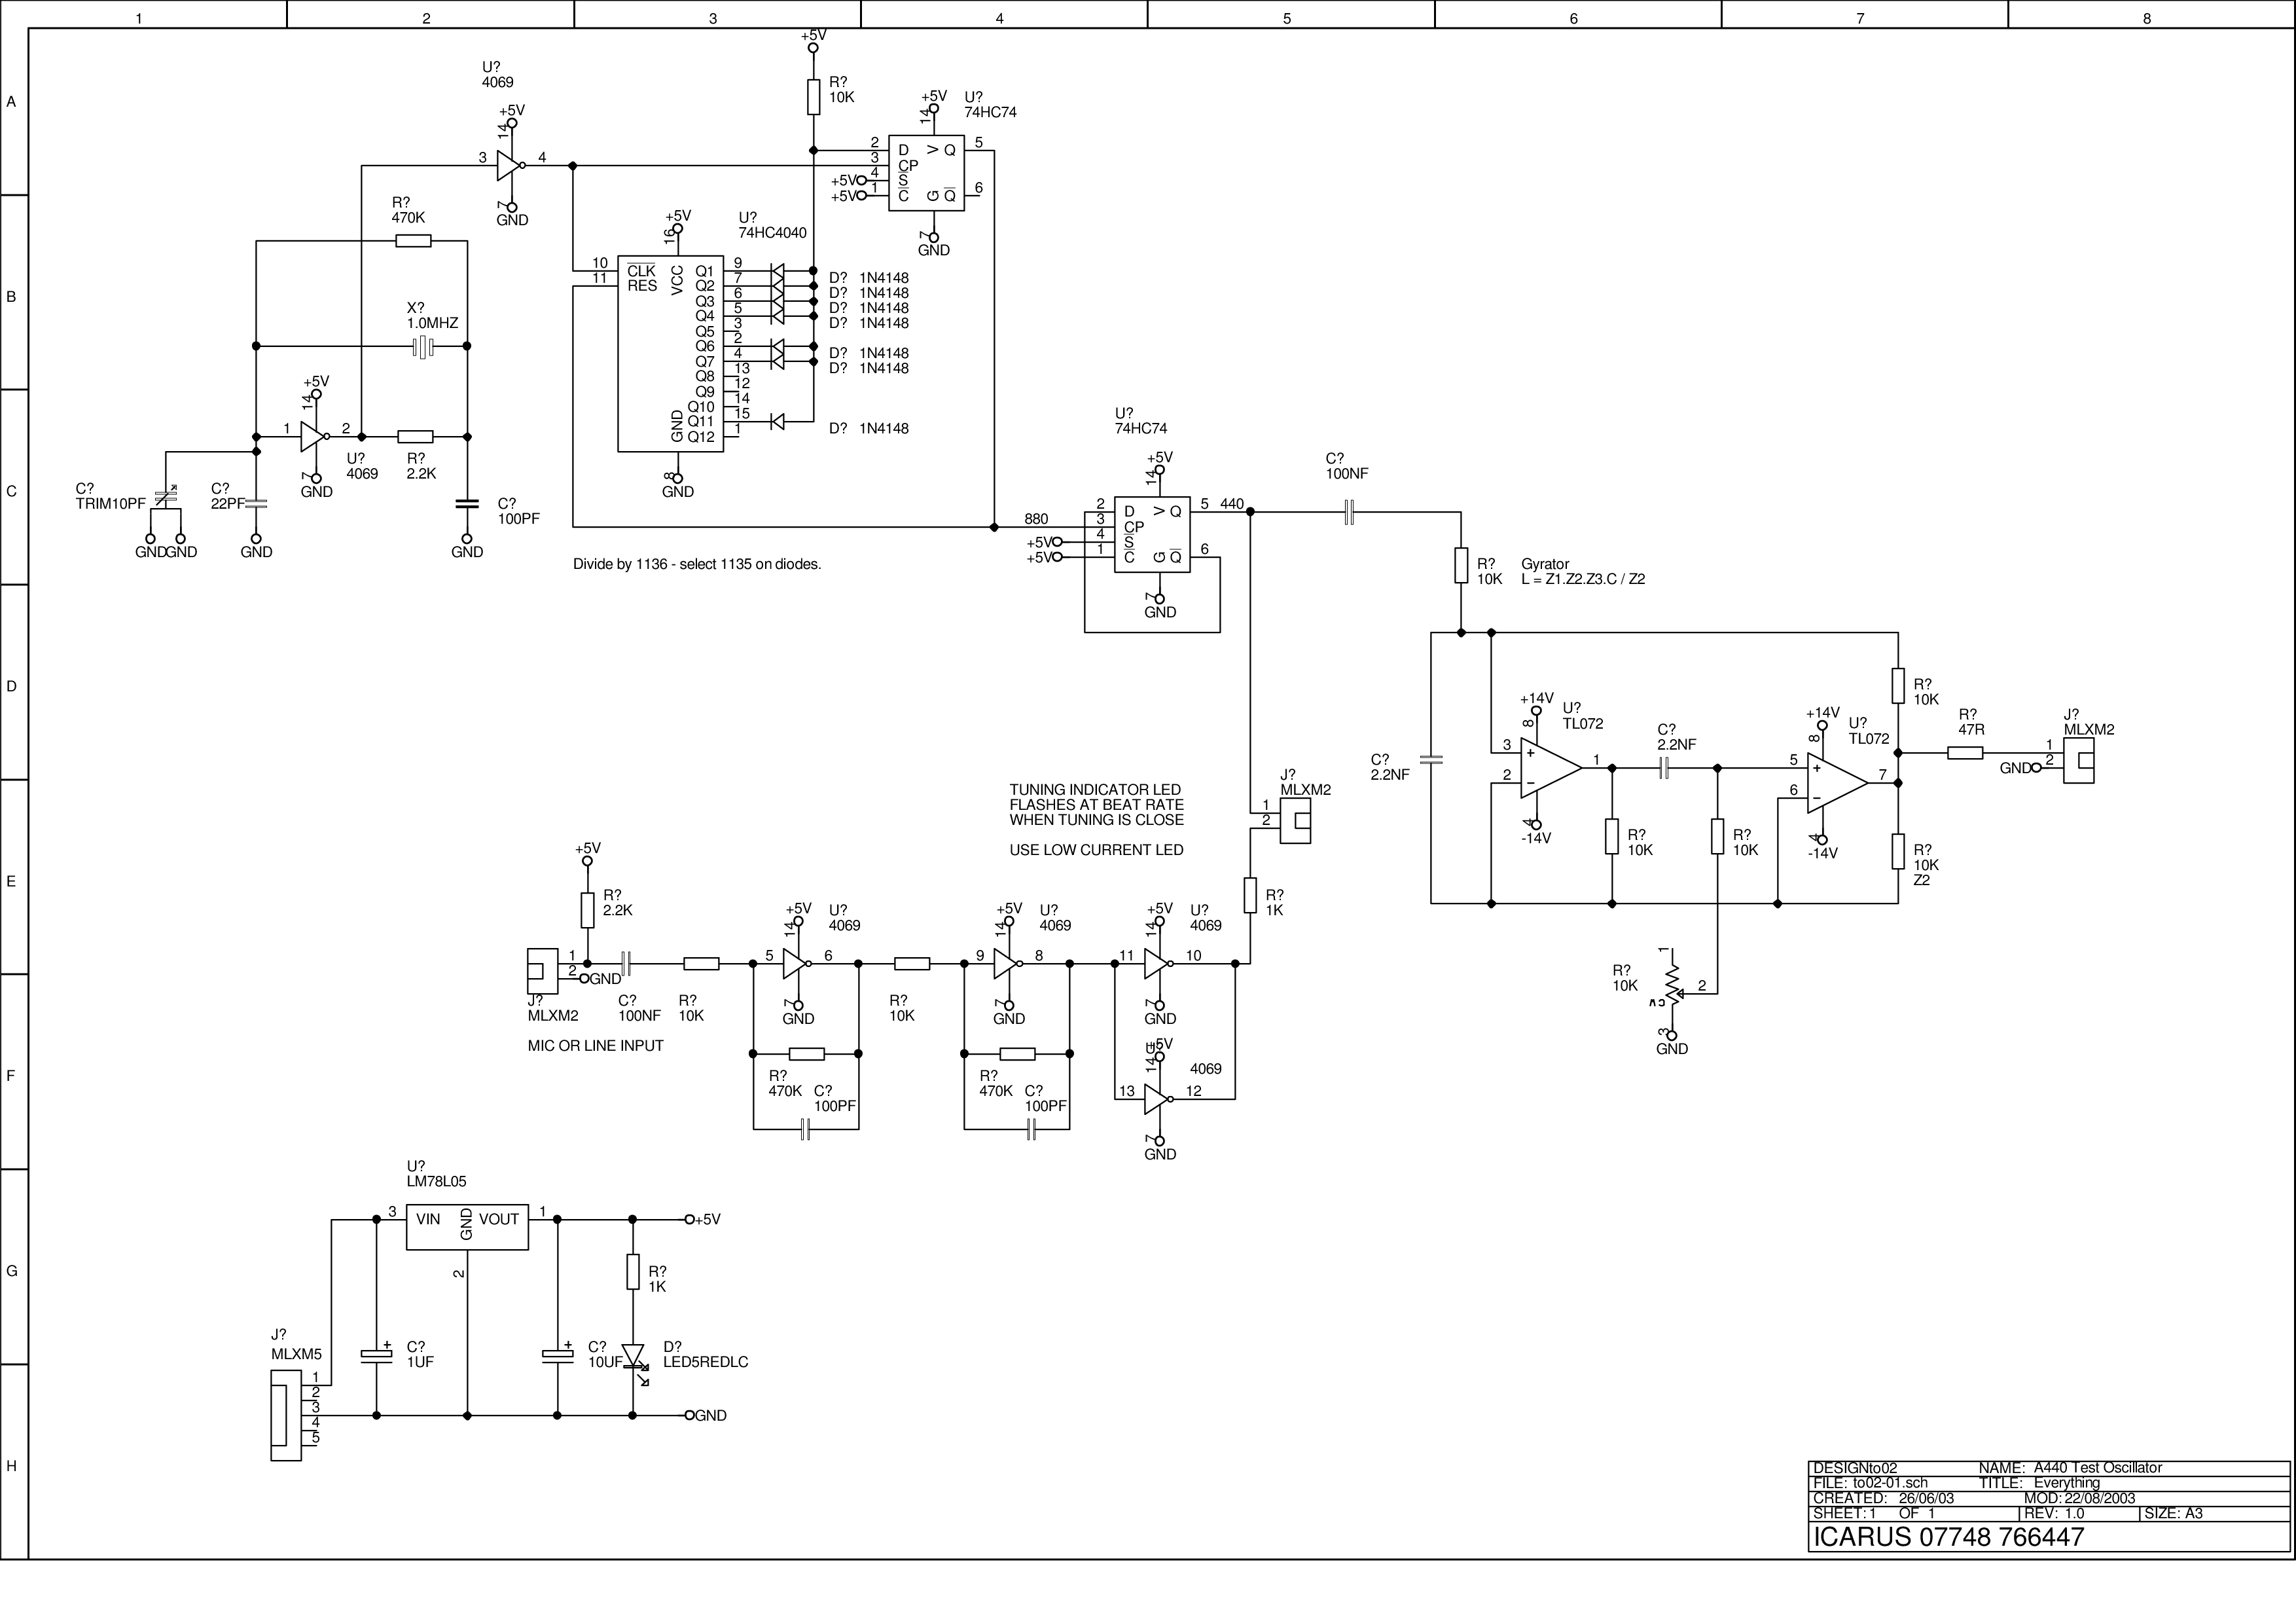 Wiki Schematics A 440 Oscillator Version X Accurate Sine Wave Generator Circuit Schematic Diagram I Thought It Was Time For Crystal Controlled Reference Design The Requirements Were Standard Stability Easily Good Enough